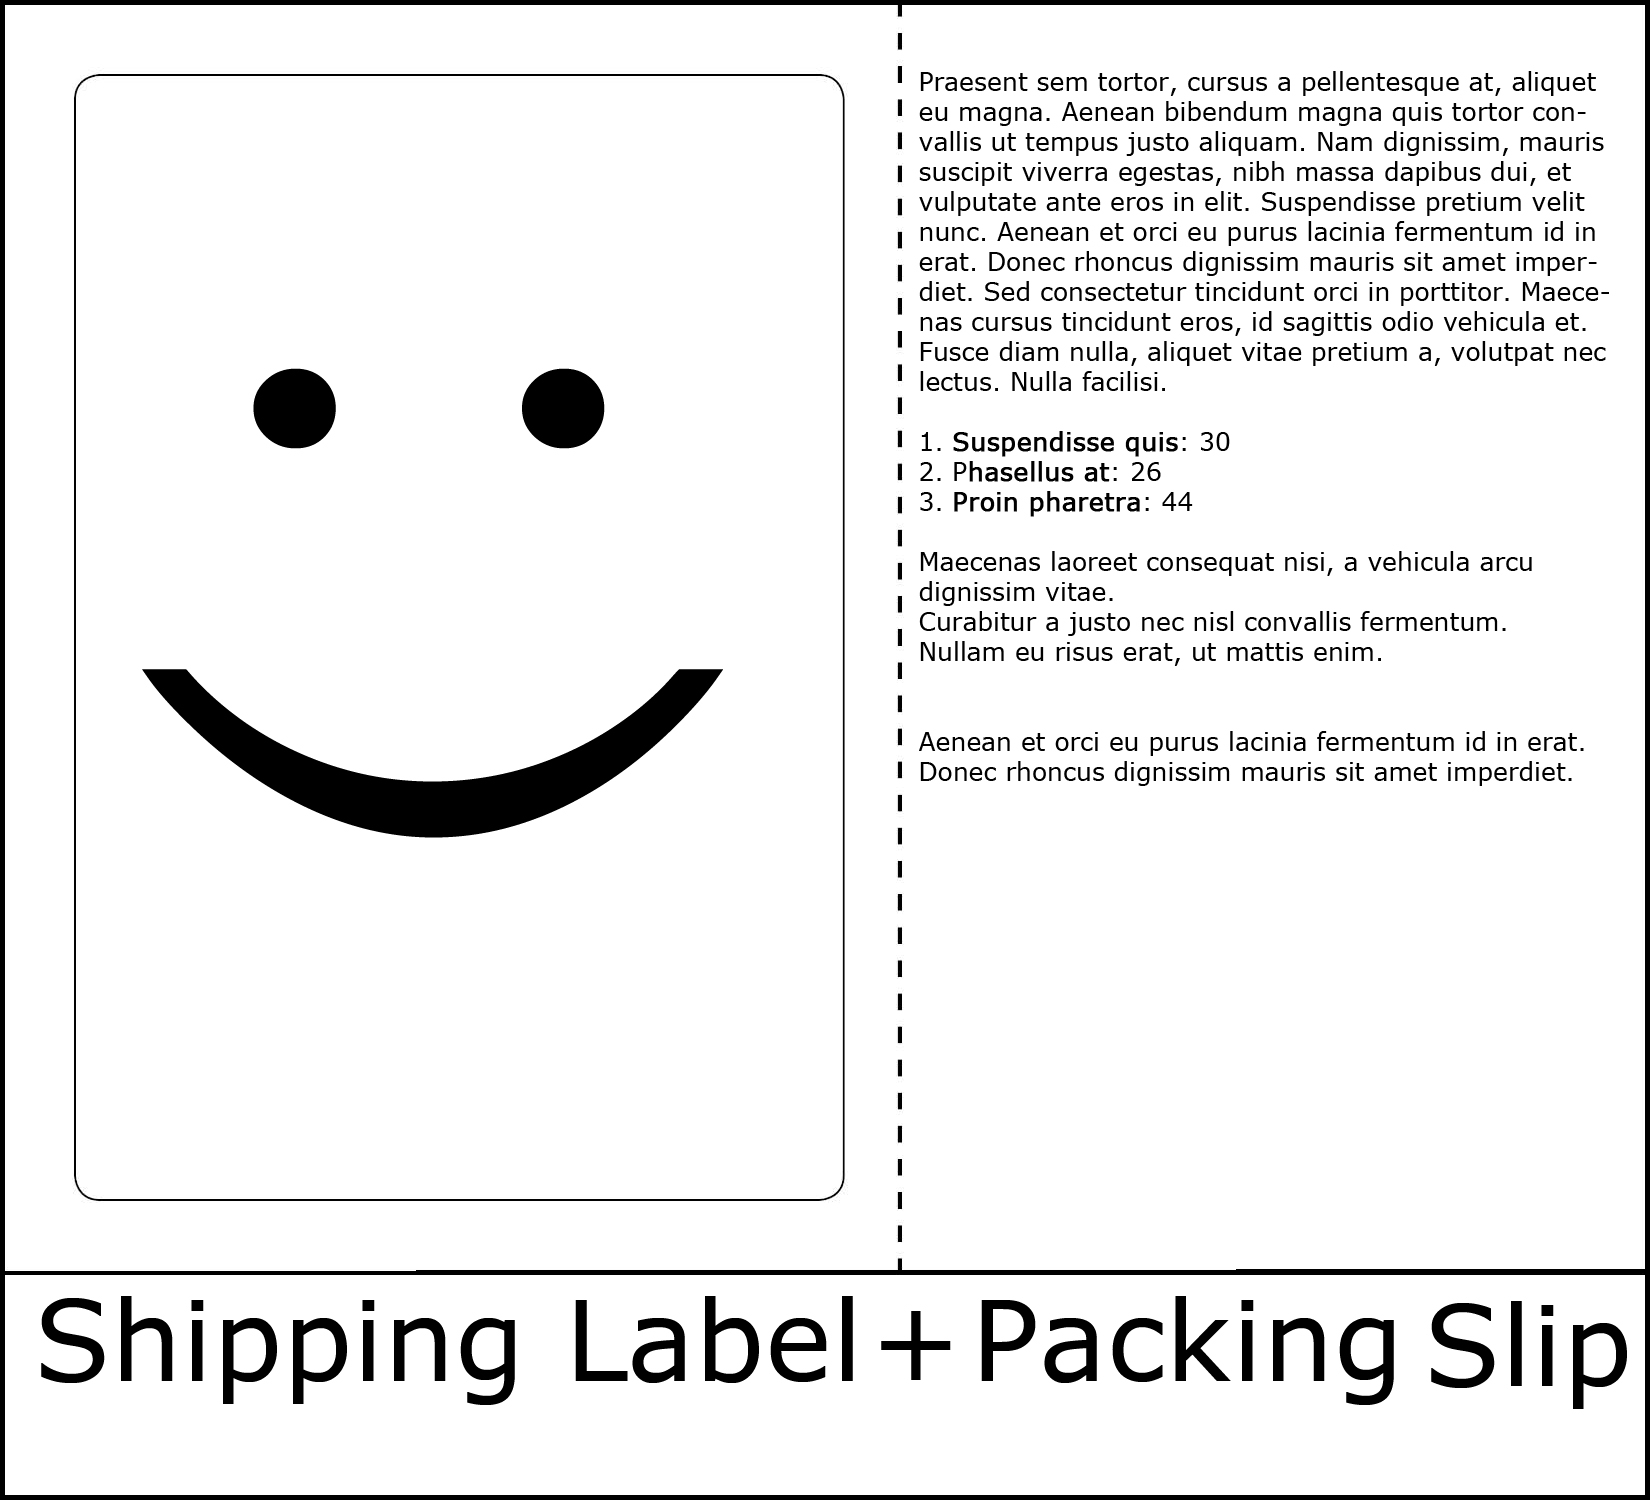 Print pack slip and label on single sheet Burris Computer Forms – Shipping Slip Template